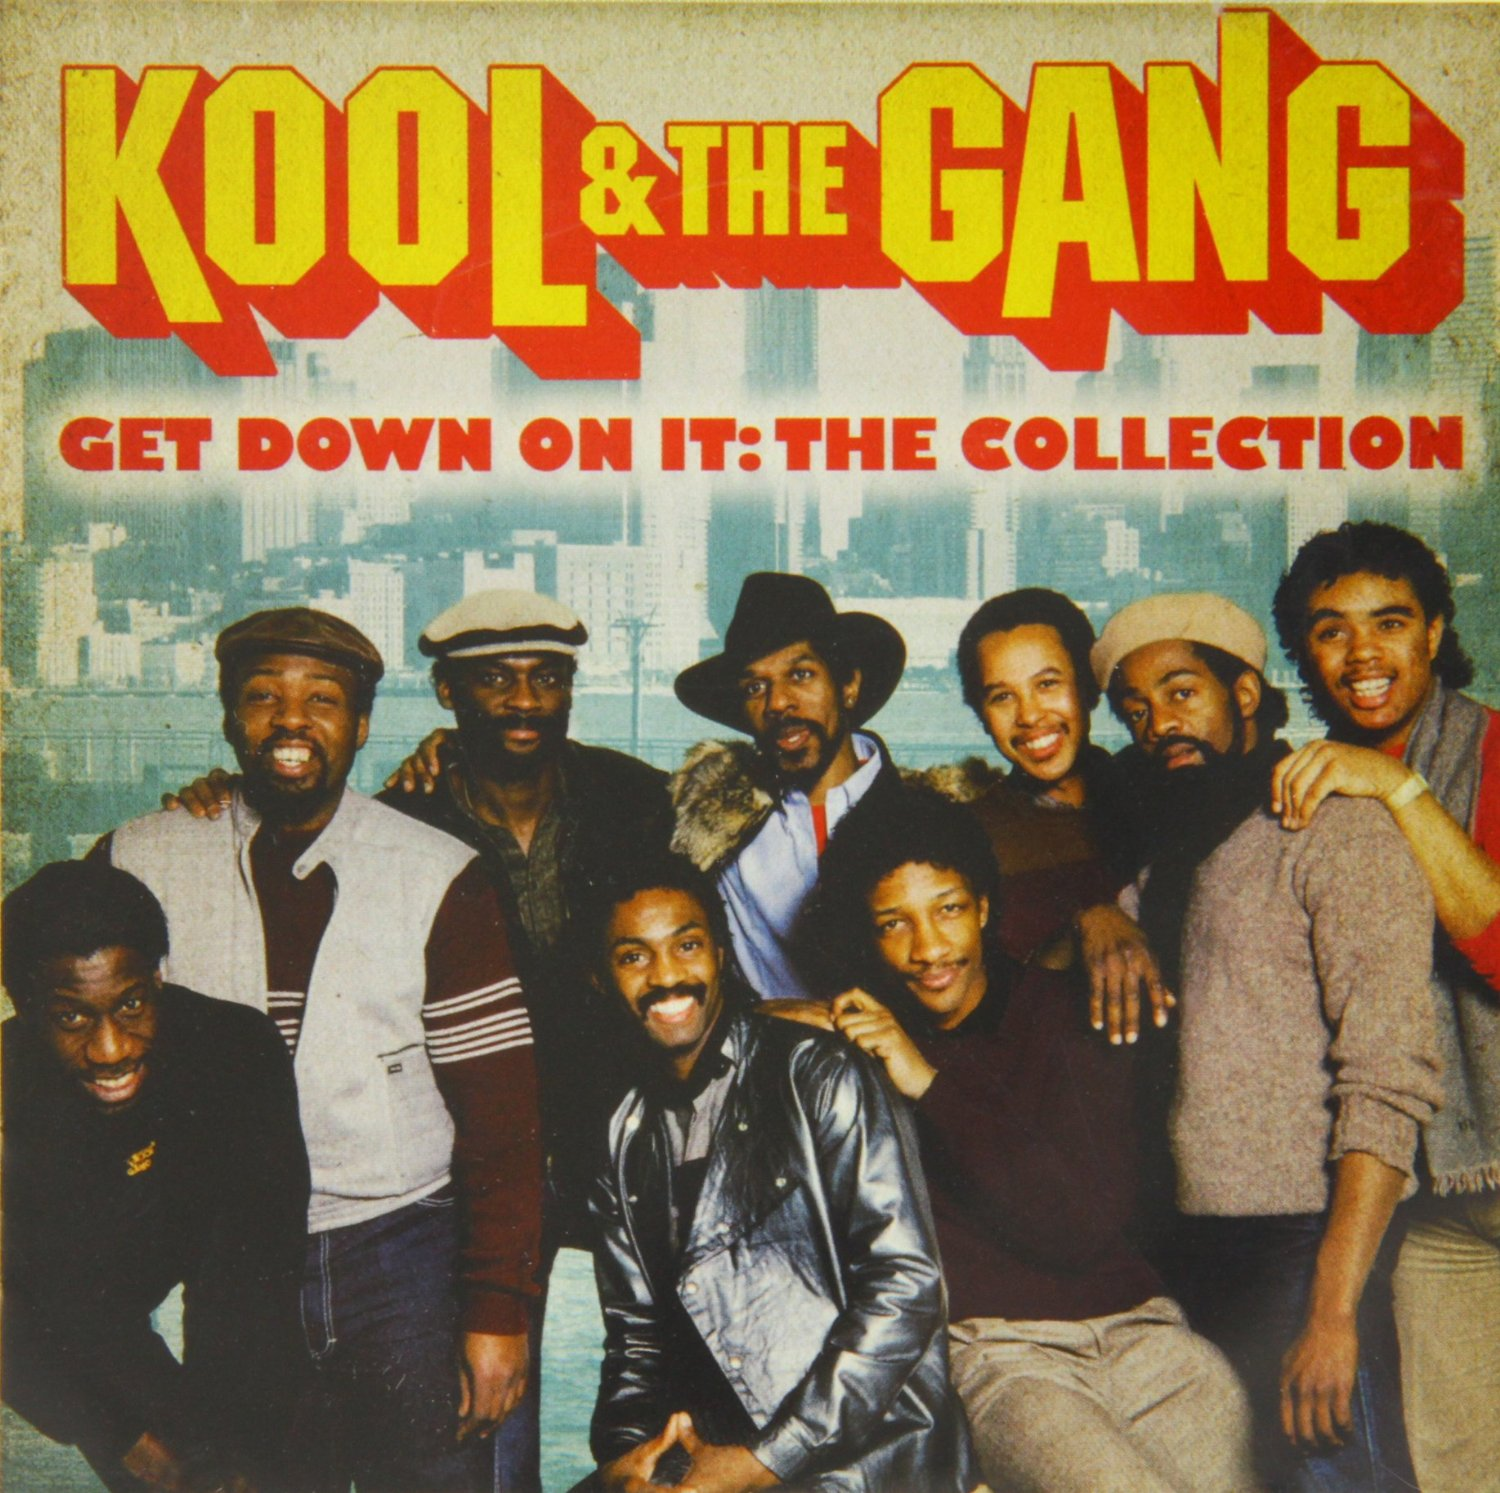 Kool & The Gang – Get Down on It: The Collection CD